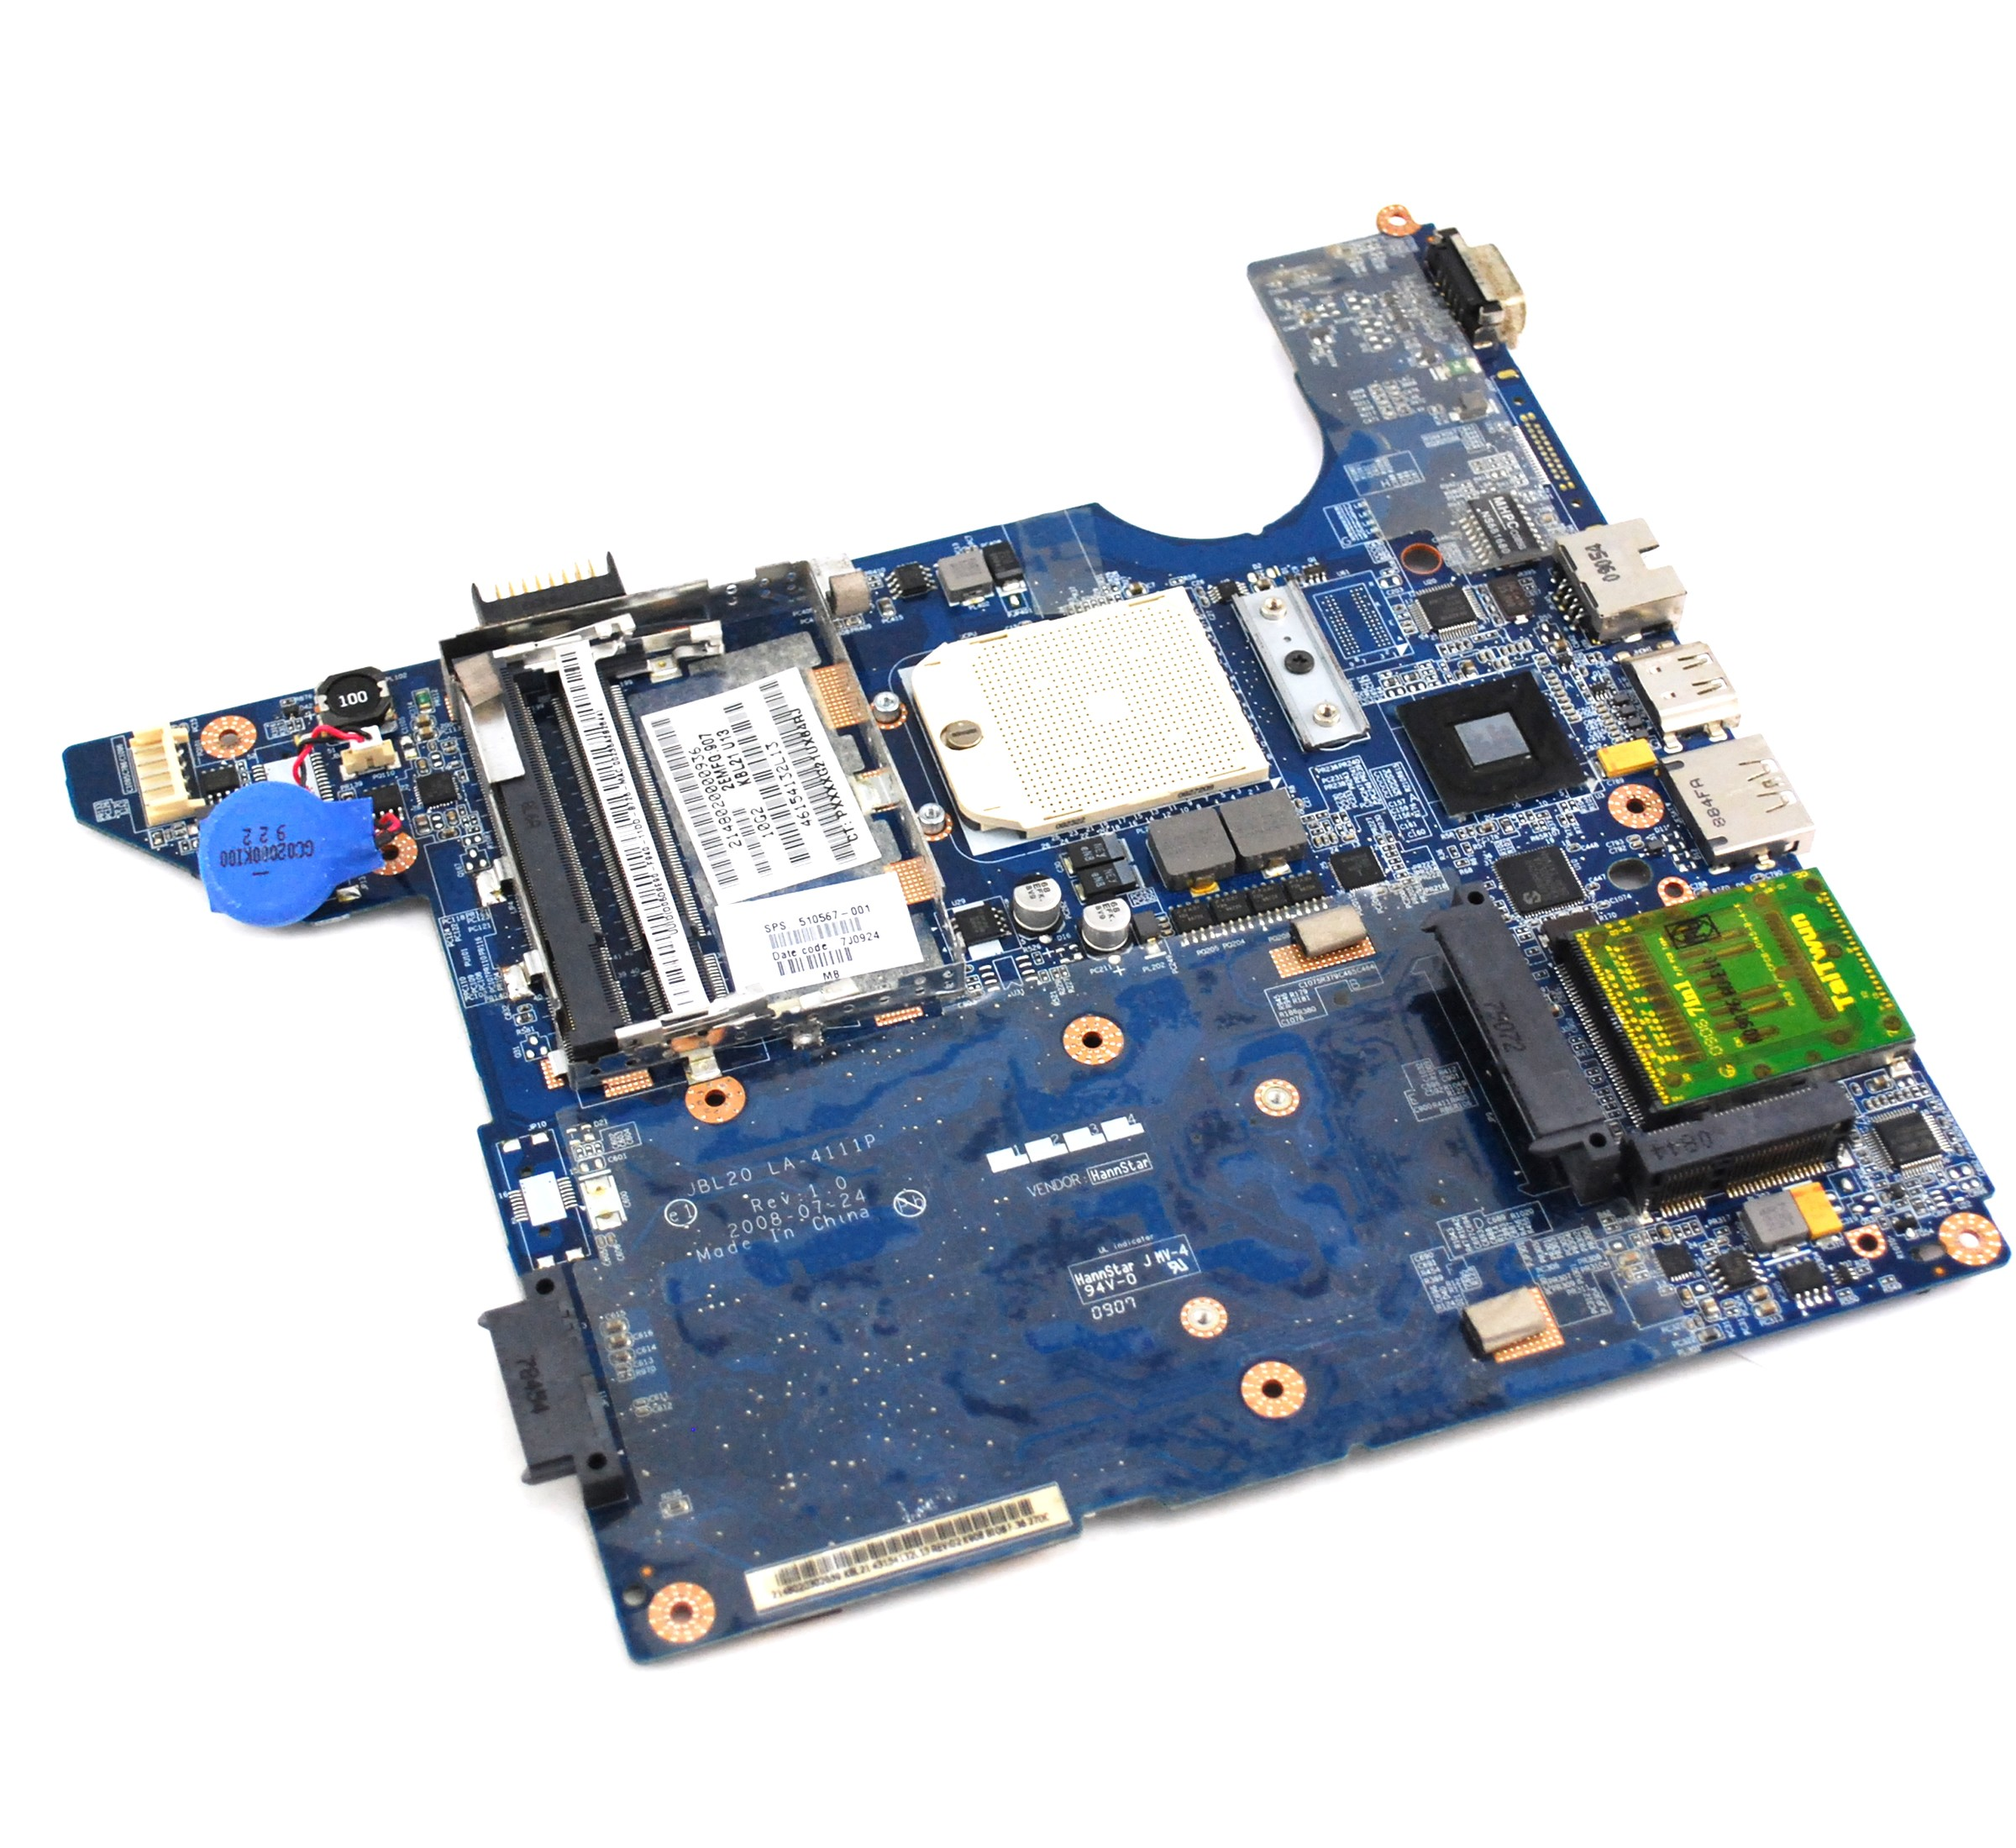 Asus M5a78l M Lx3 Carte M 232 Re Amd Micro Atx Socket Am3 Amazon Fr -  asus m5a78l m lx3 carte mre micro atx socket am3 amd 760g amd radeon hd 3000 sata ddr4 2400 65w amd a10 9700e 4 ghz 6 cus 384 sps 847 mhz ddr4 2400